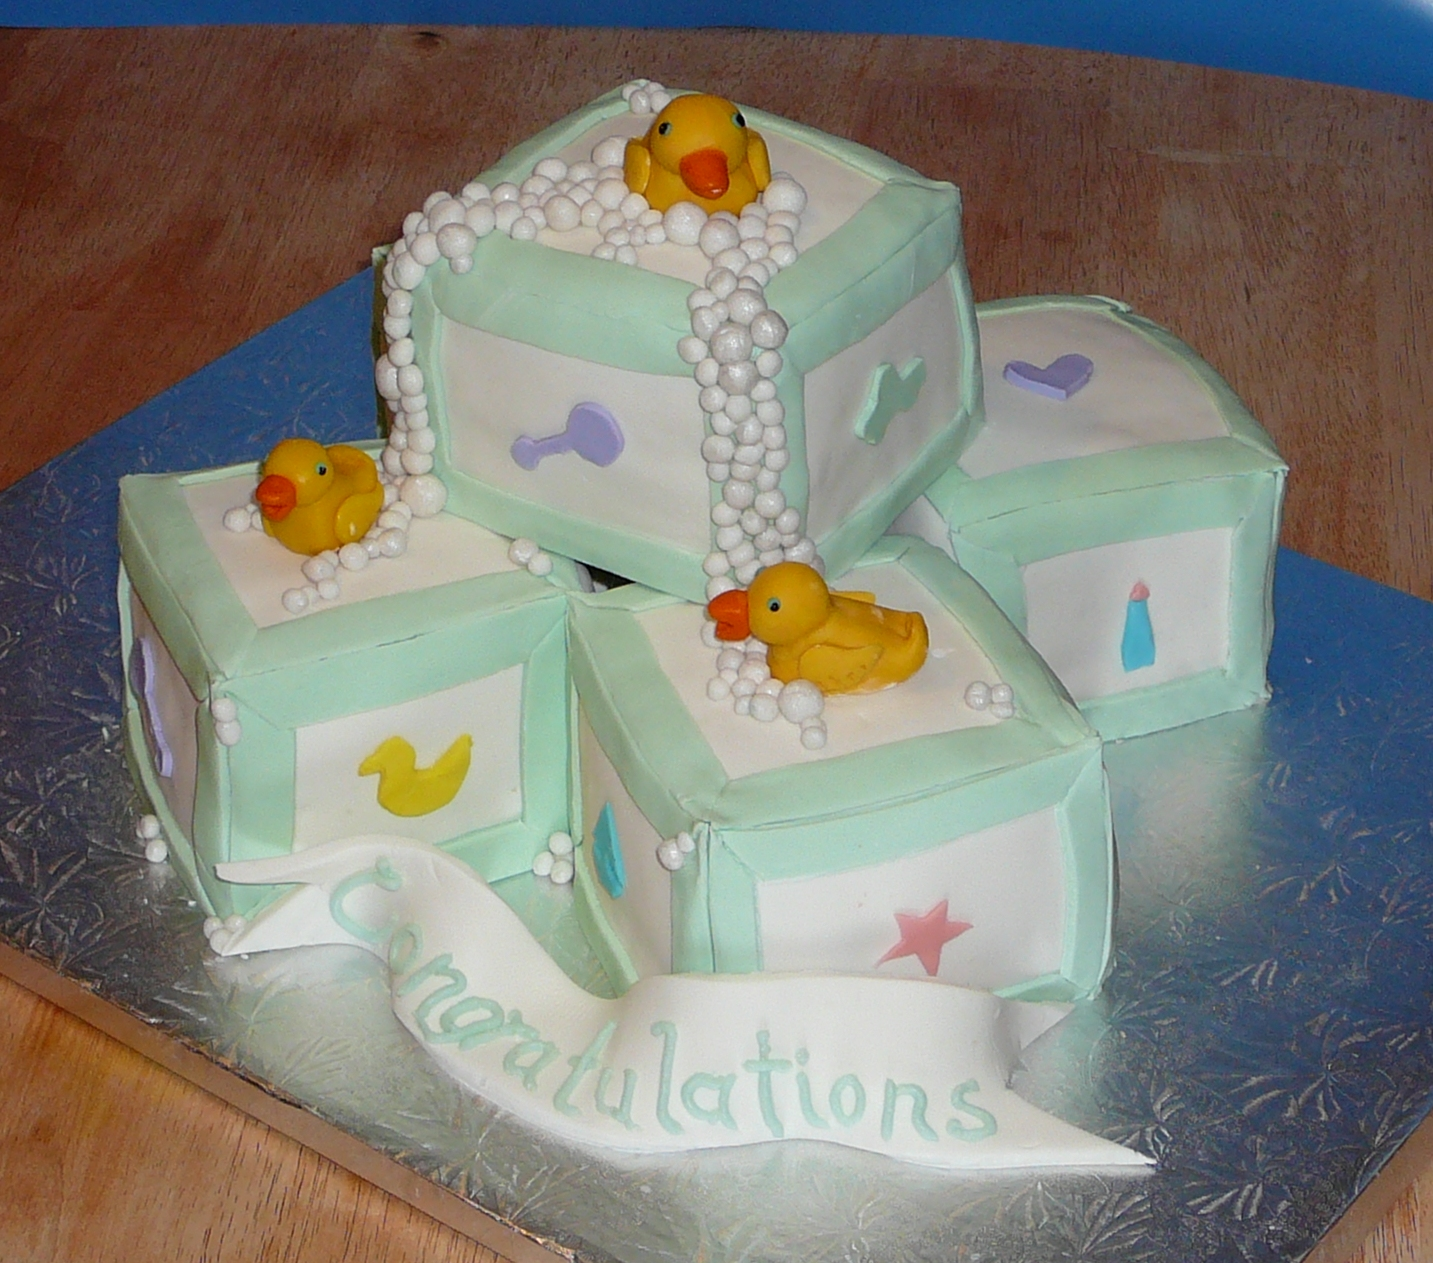 Cake Decoration Ideas For Baby Shower : Living Room Decorating Ideas: April 2015